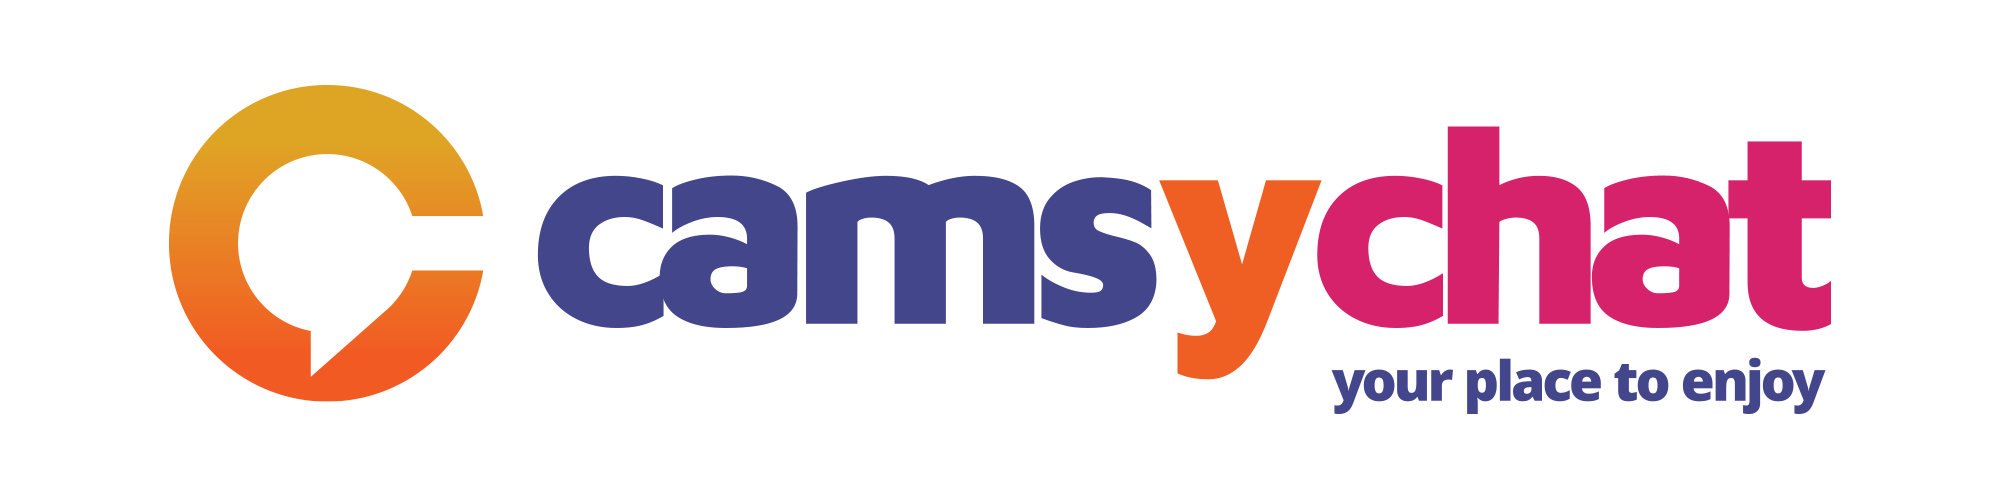 camsychat7.com